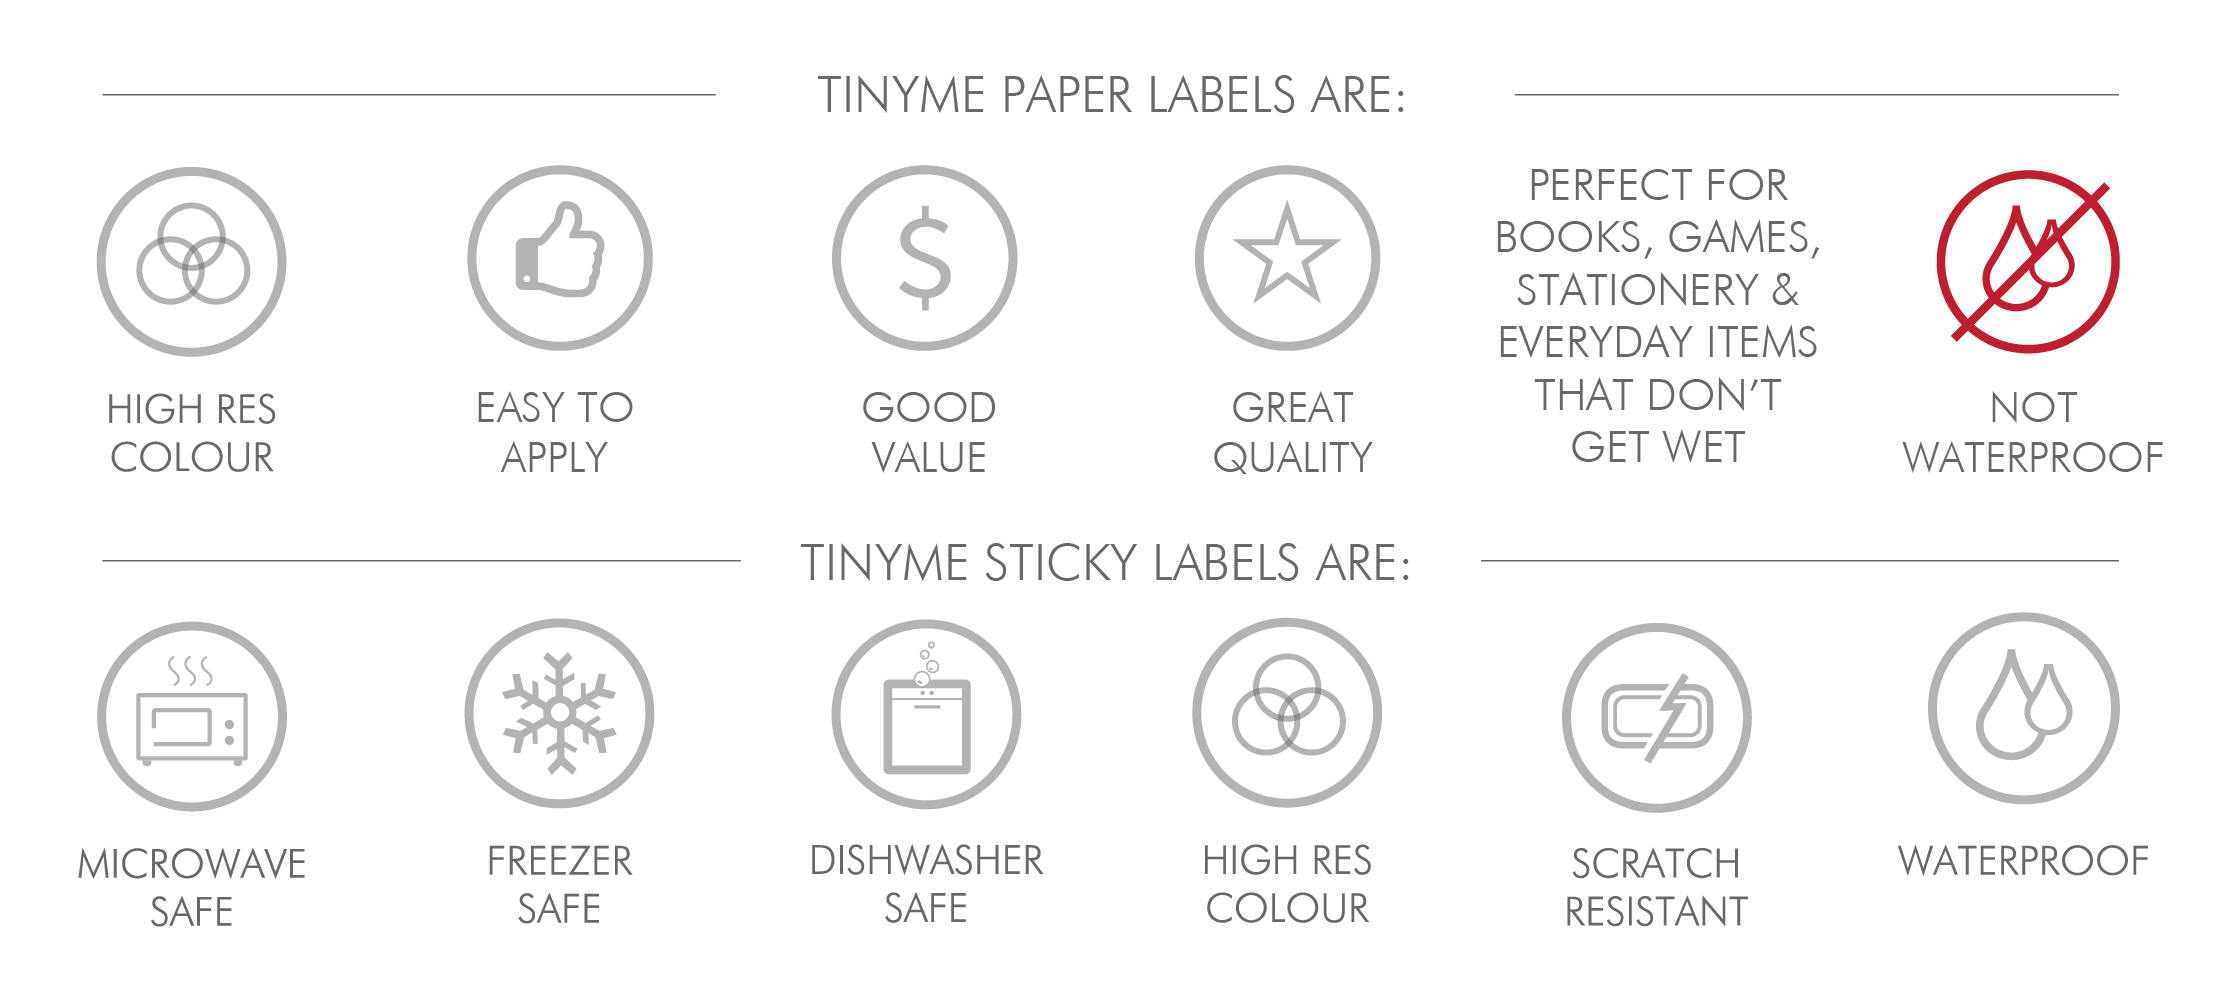 Sticky & PaperLabel Features